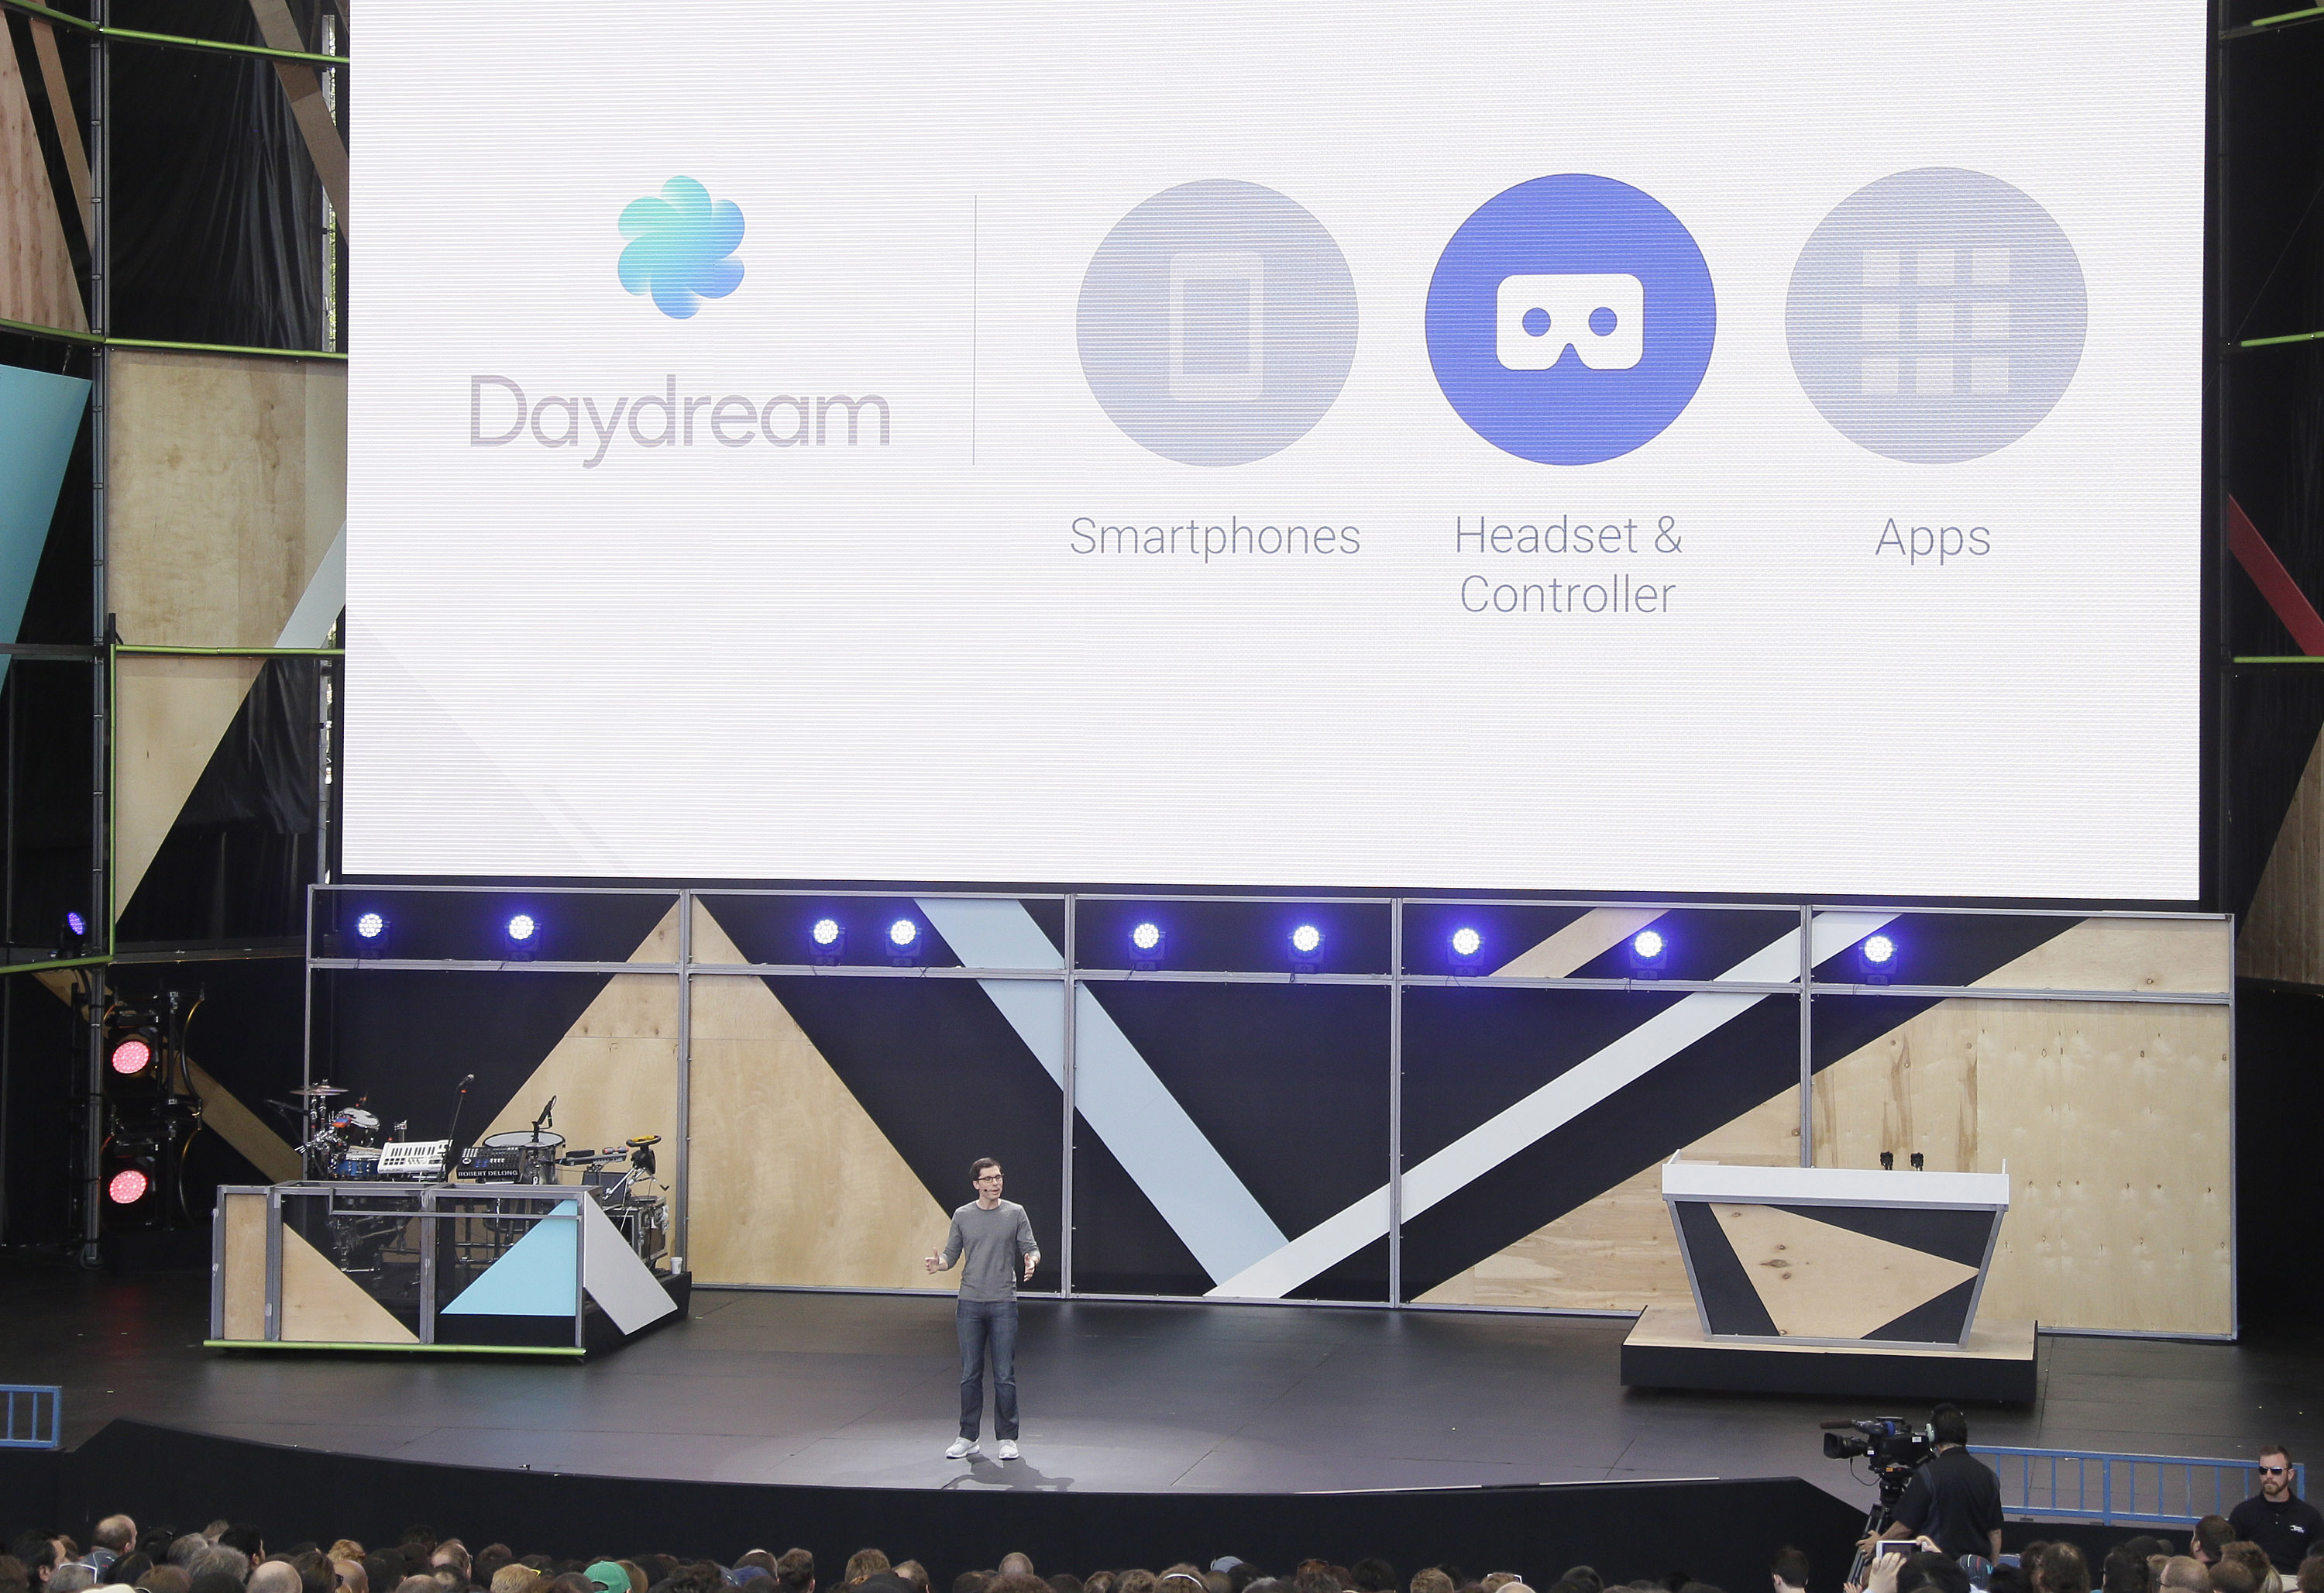 Google Daydream VR vision: With opportunity comes challenges